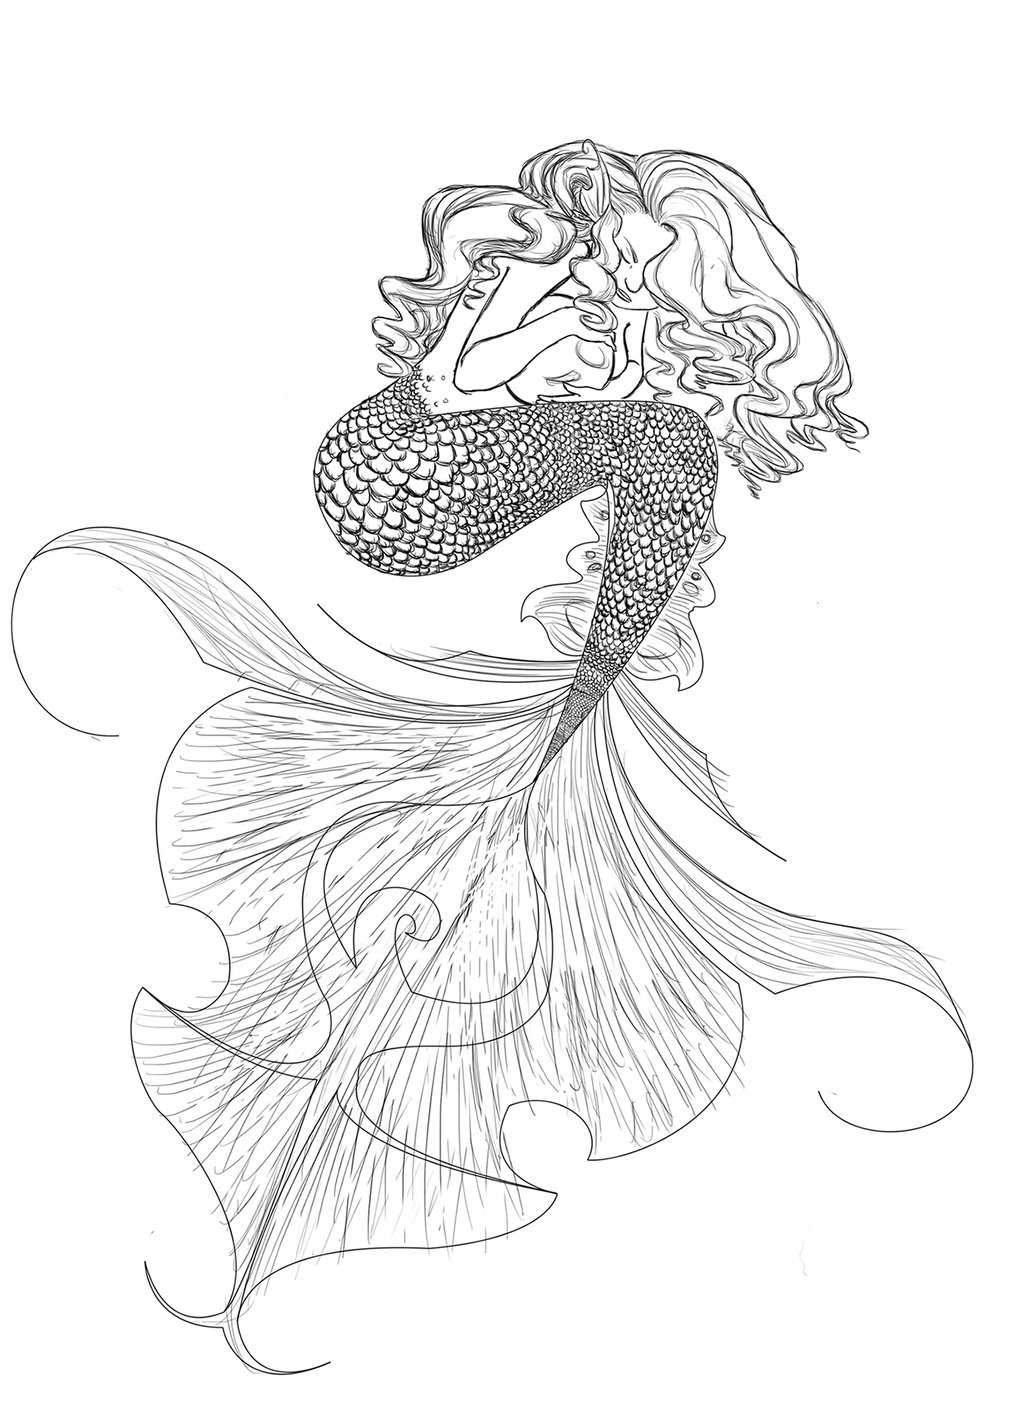 mermaid outline coloring pages 23 best images about blue whales on pinterest mermaid mermaid coloring outline pages